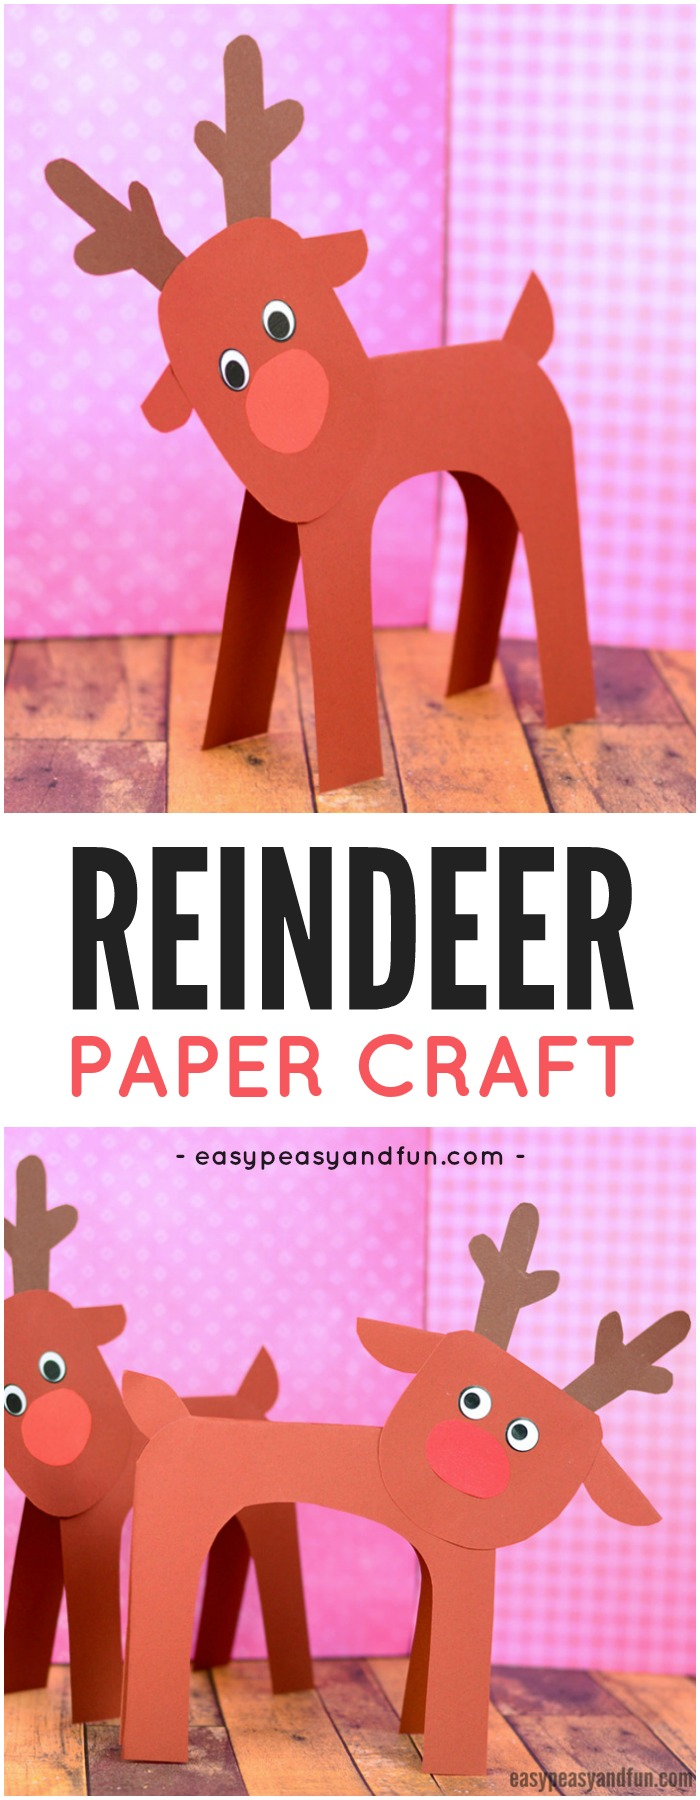 craft ideas of paper simple reindeer paper craft easy peasy and 3927